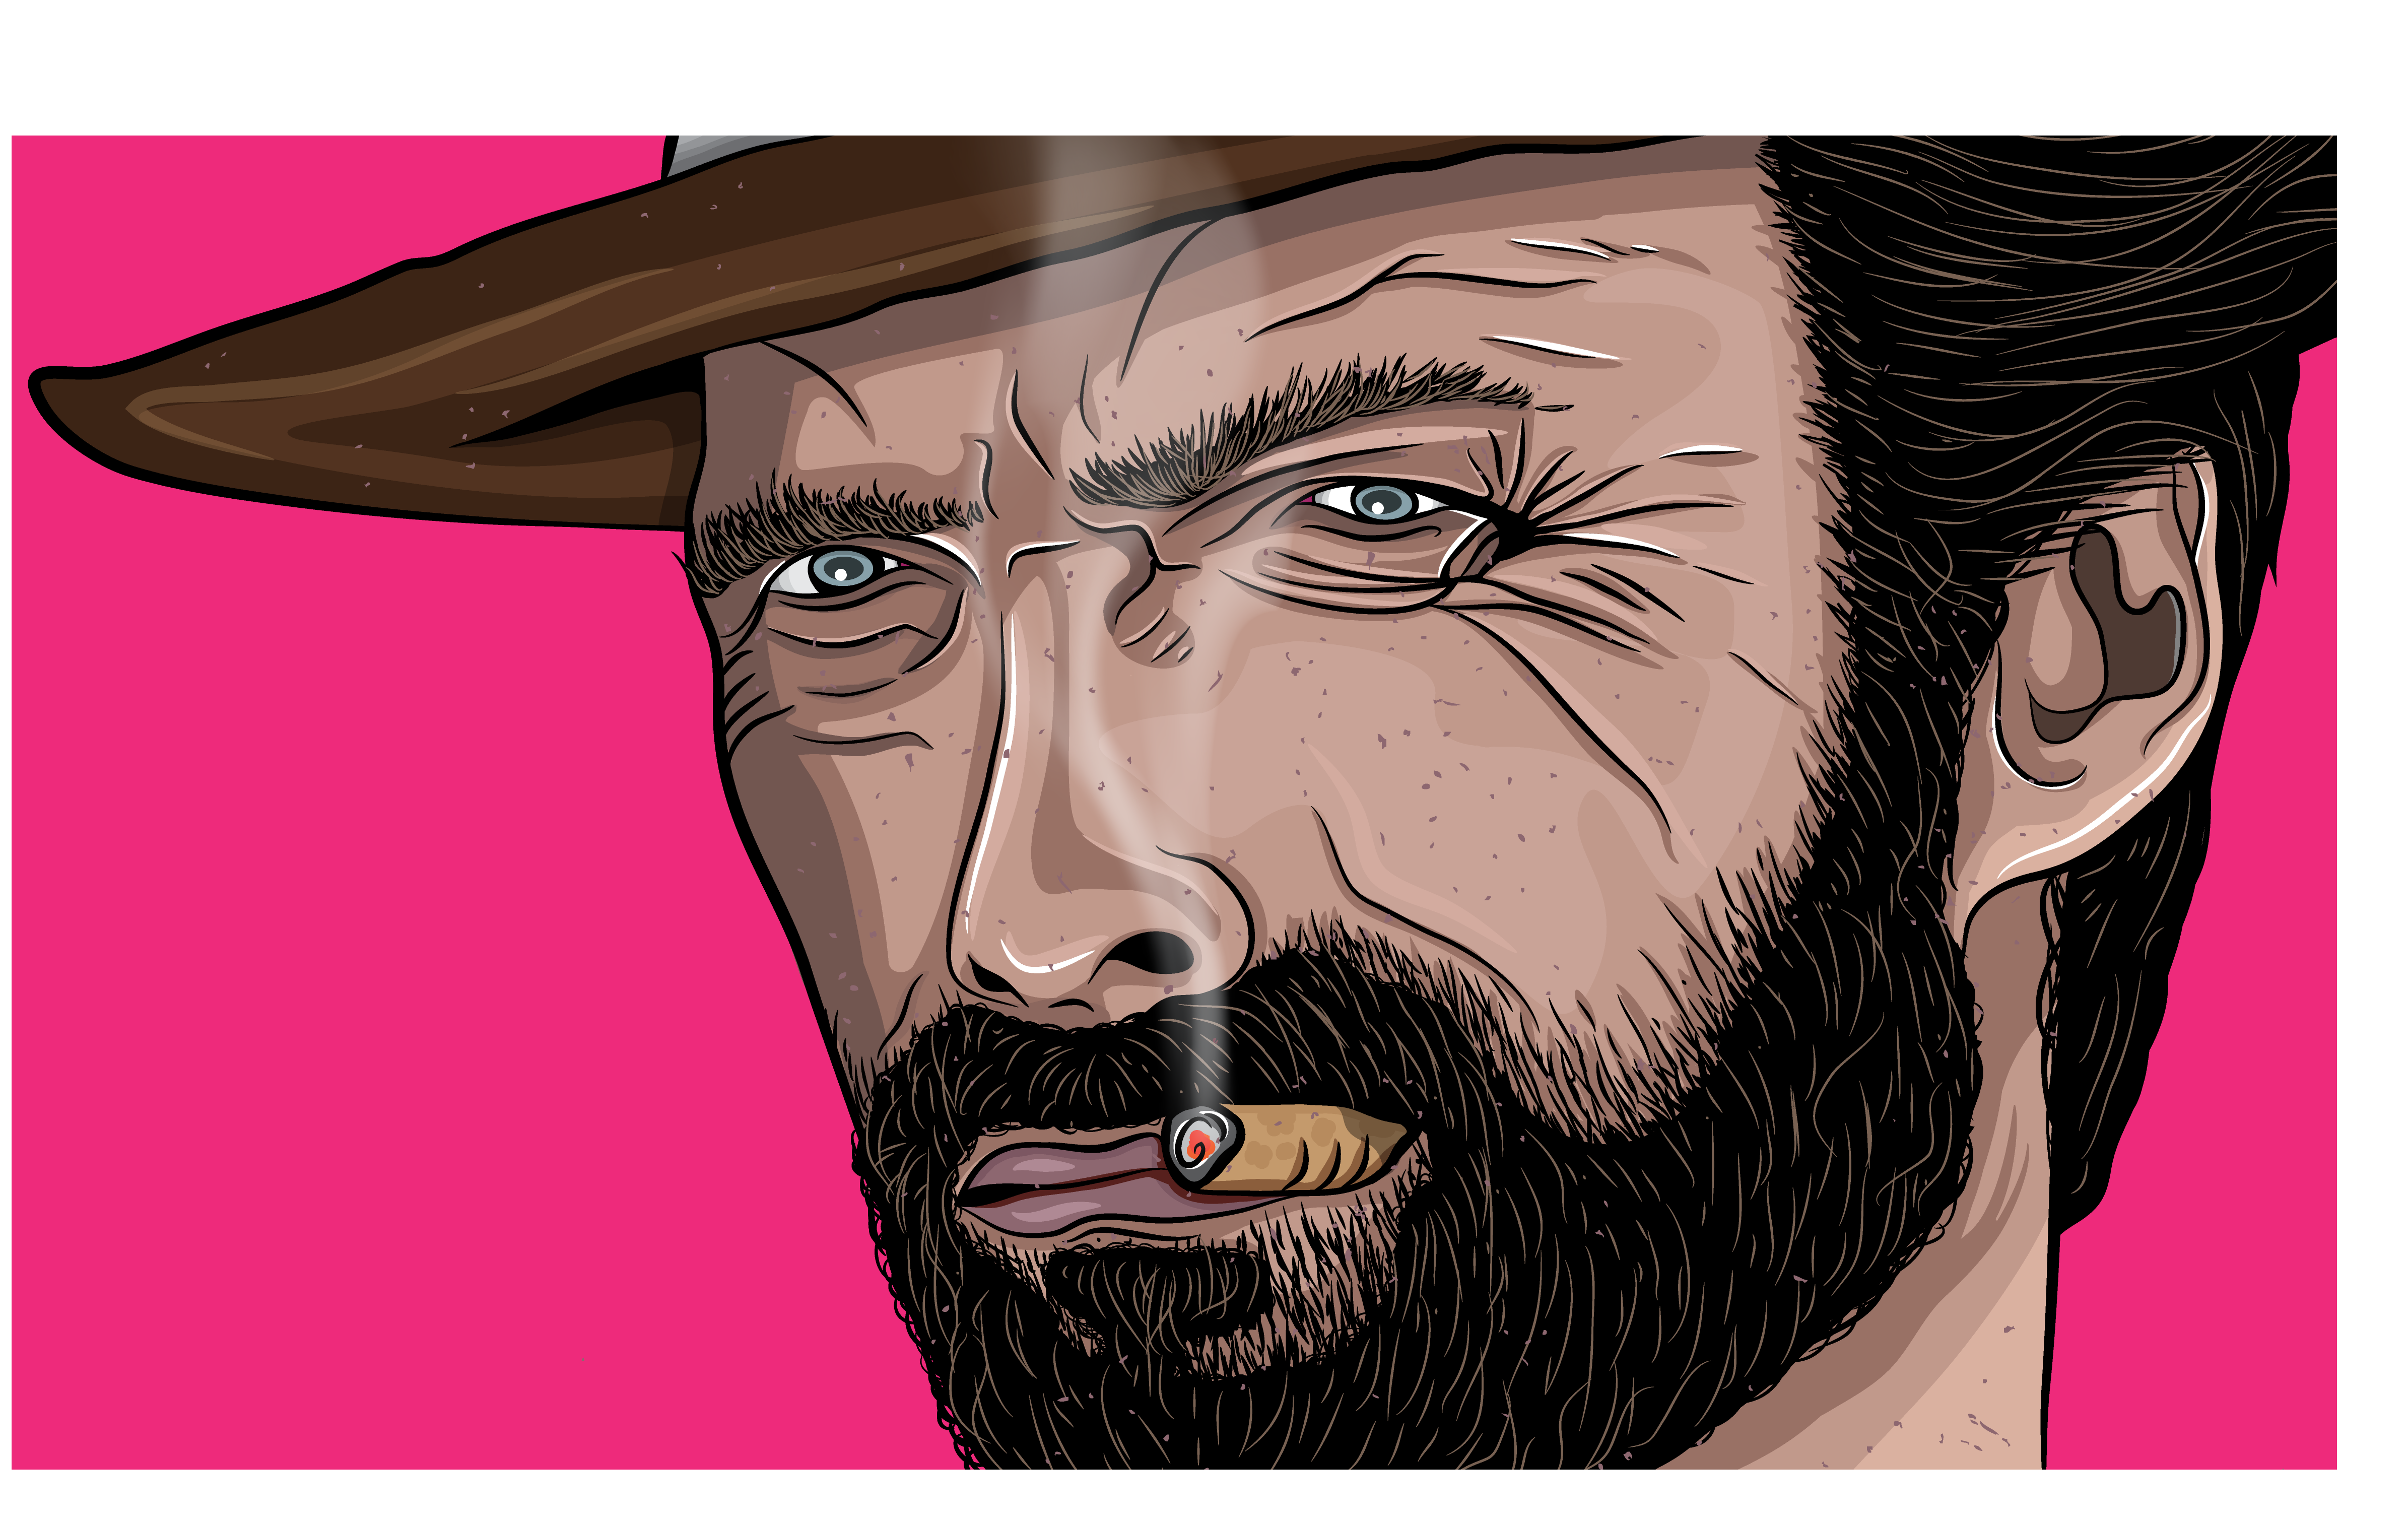 Clint Eastwood illustration